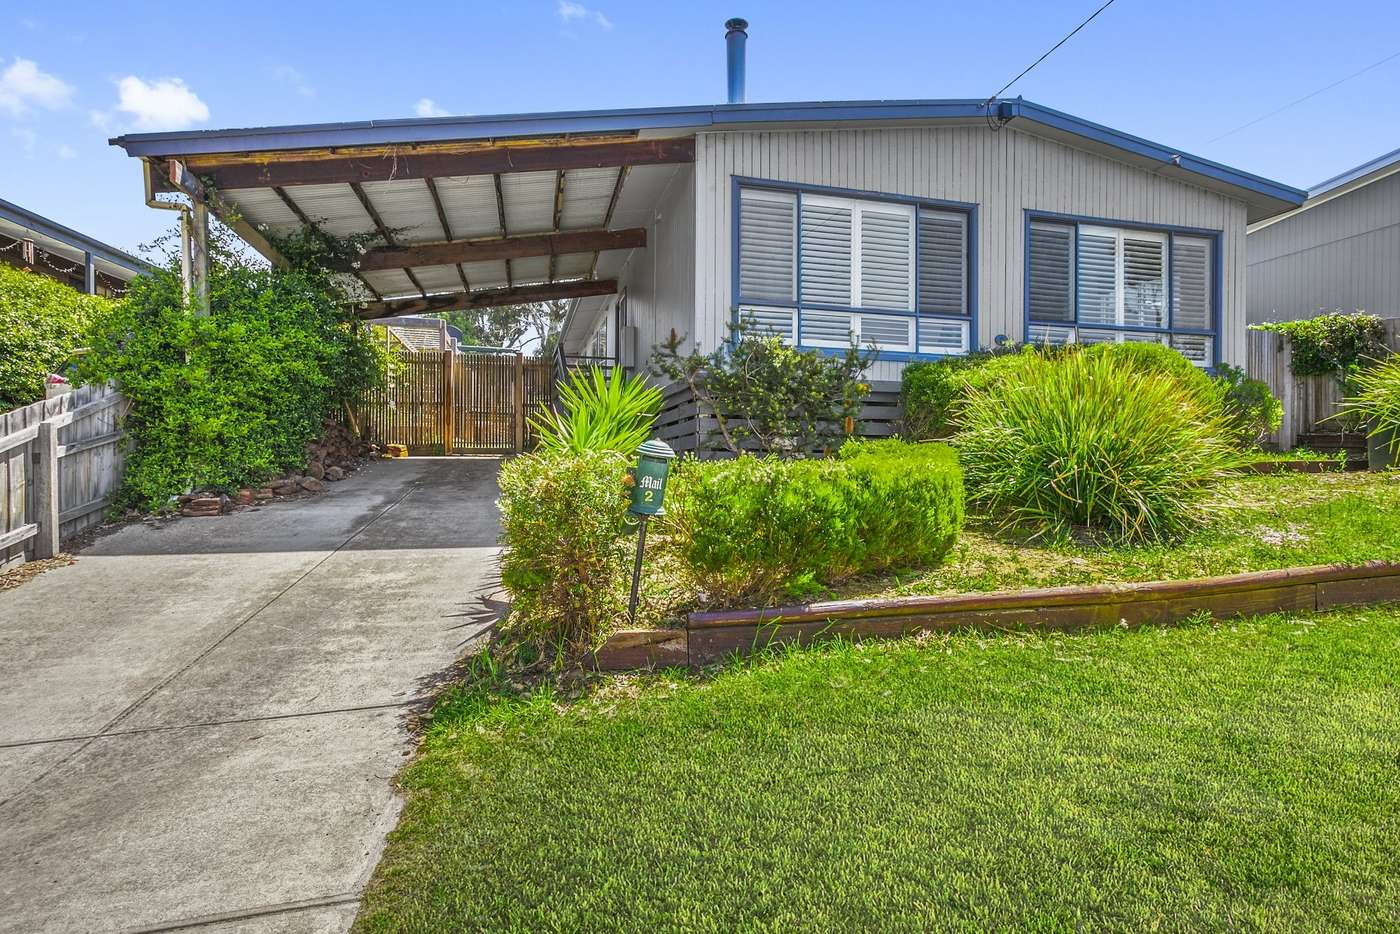 Main view of Homely house listing, 2 Sunset Strip, Ocean Grove VIC 3226